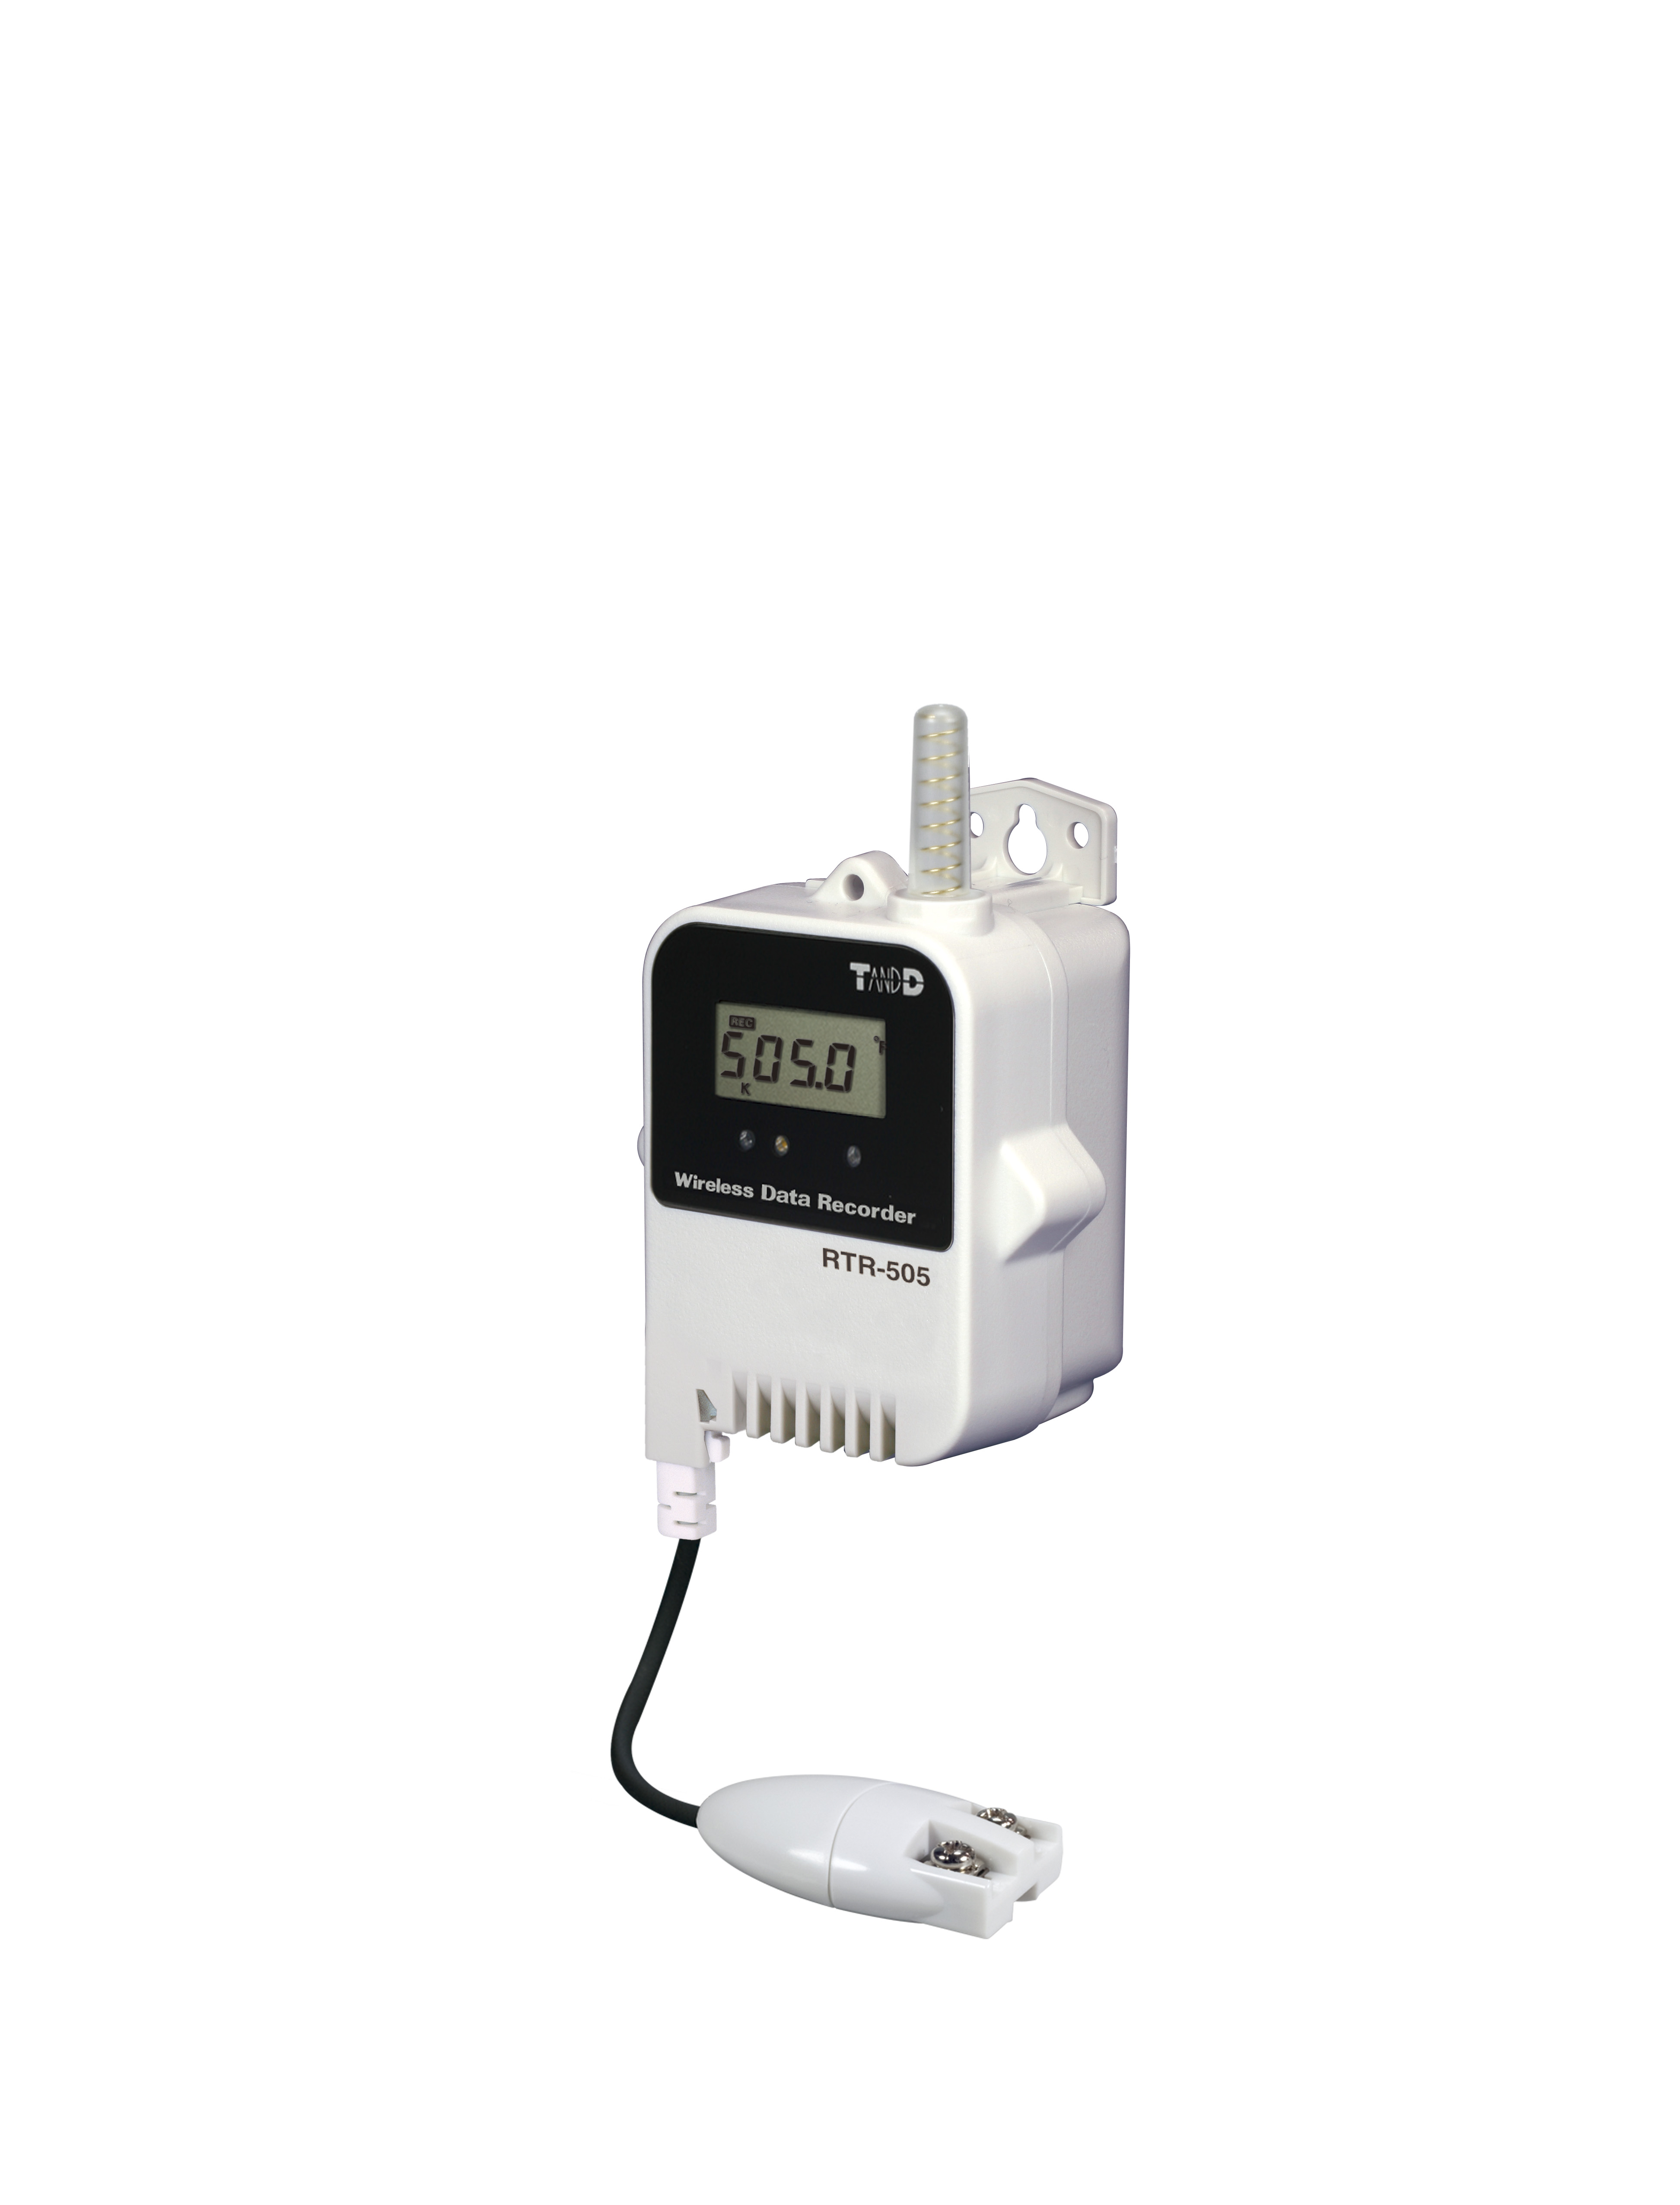 TADREC033: RTR-505-PtL Wireless Data Logger with Long Life Battery